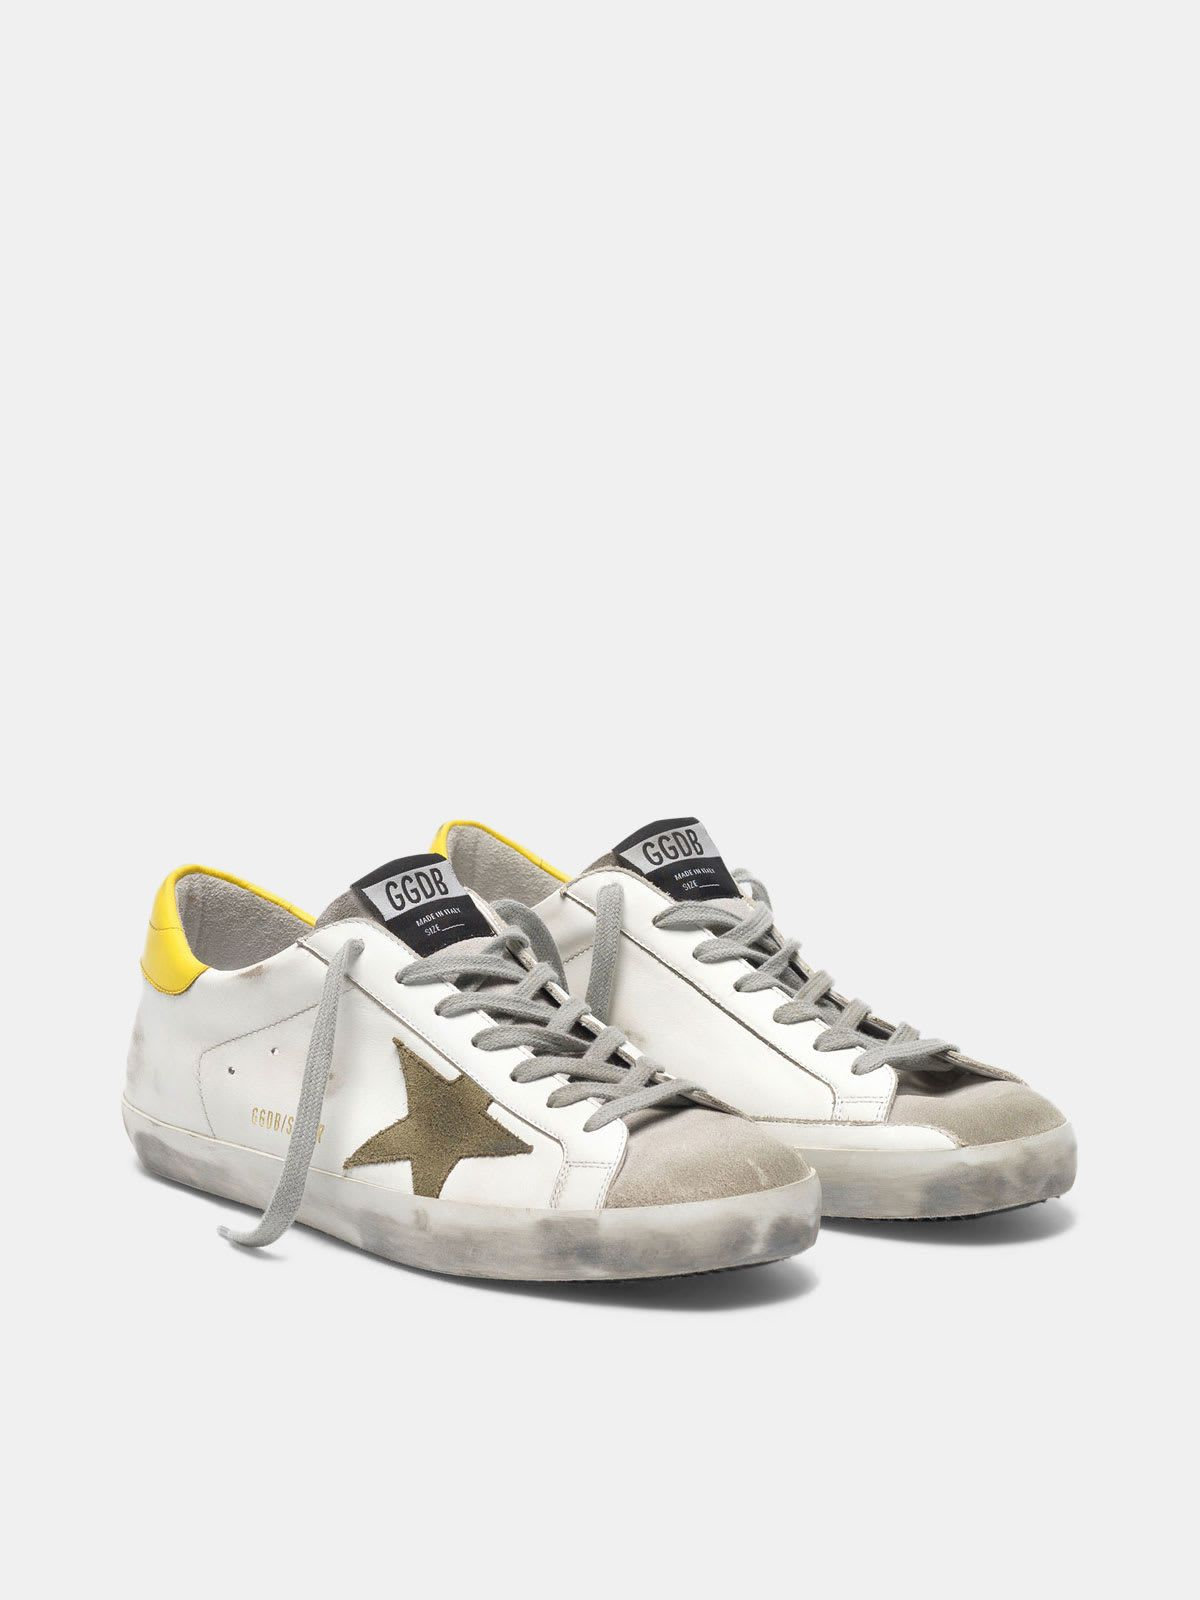 Super-Star sneakers in leather with suede star and yellow heel tab